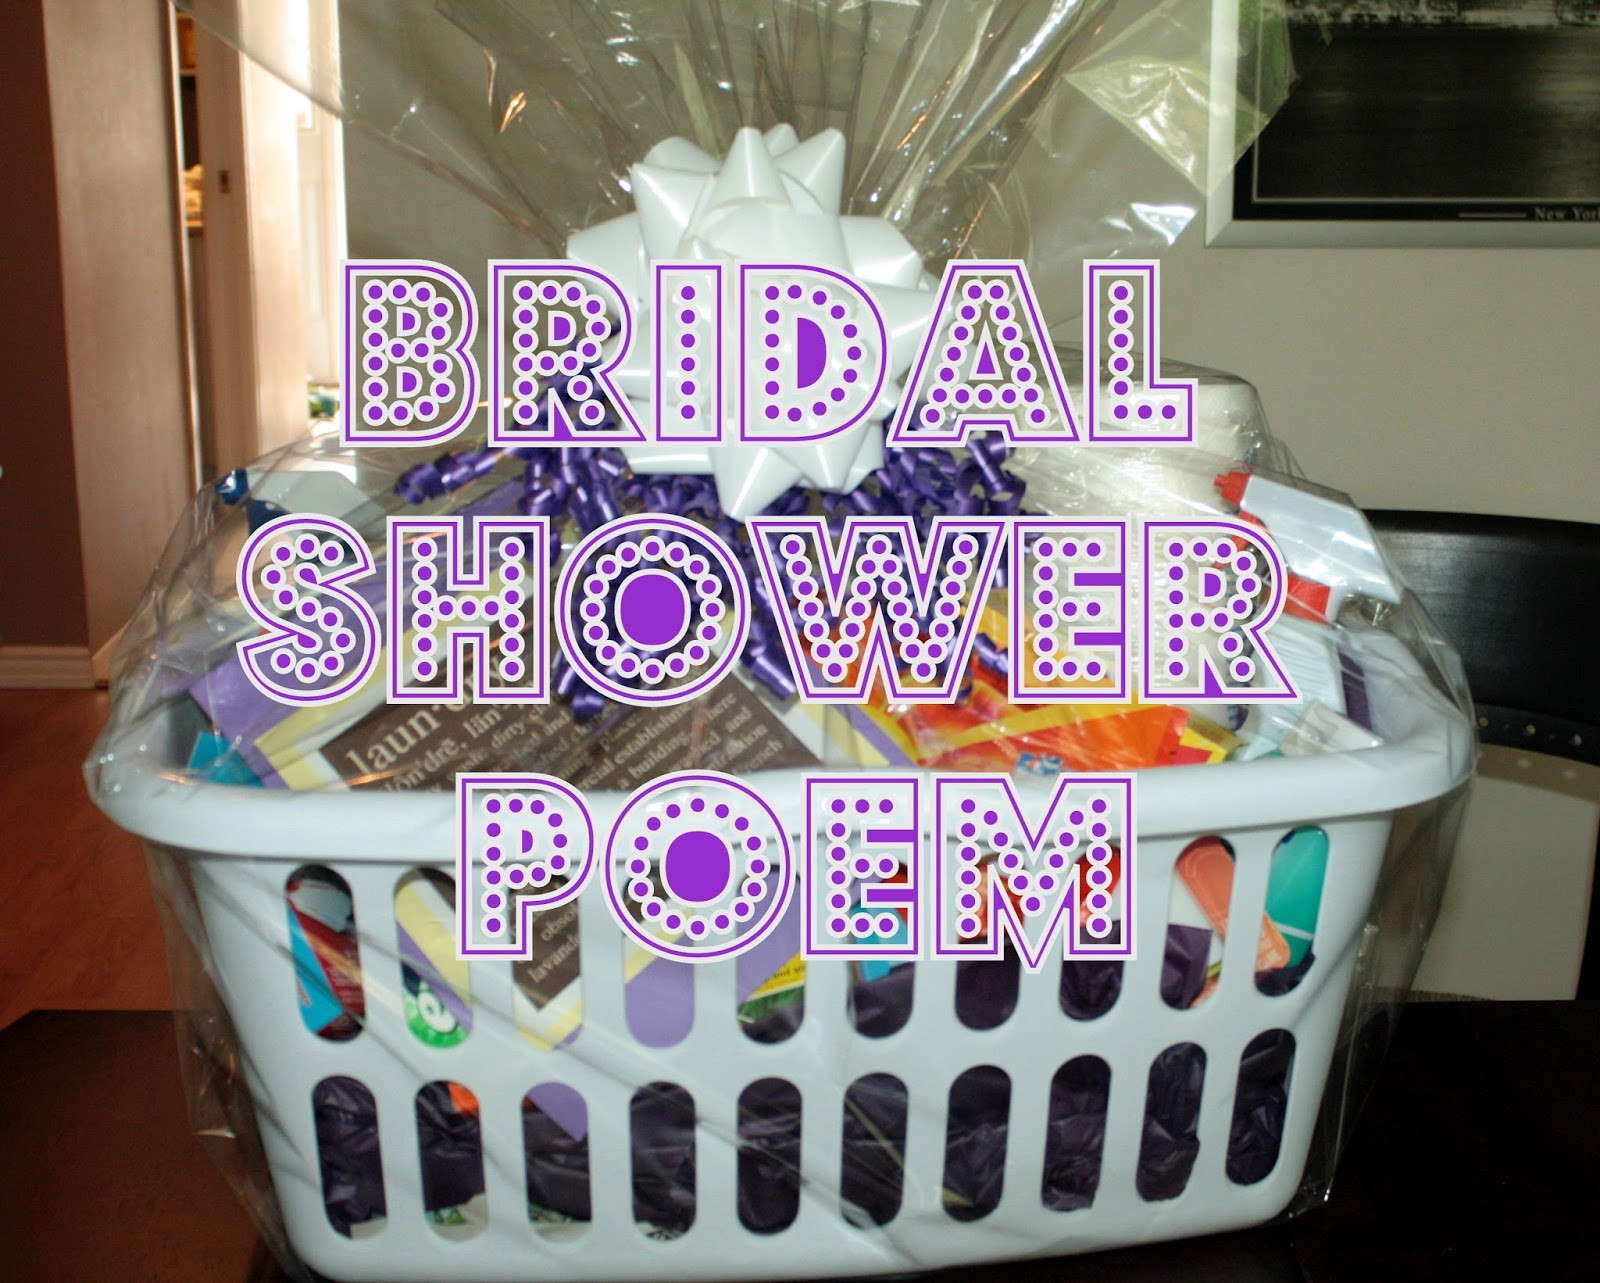 Best ideas about Fun Wedding Gift Ideas . Save or Pin GingerBabyMama Fun Practical Bridal Shower Gift Now.